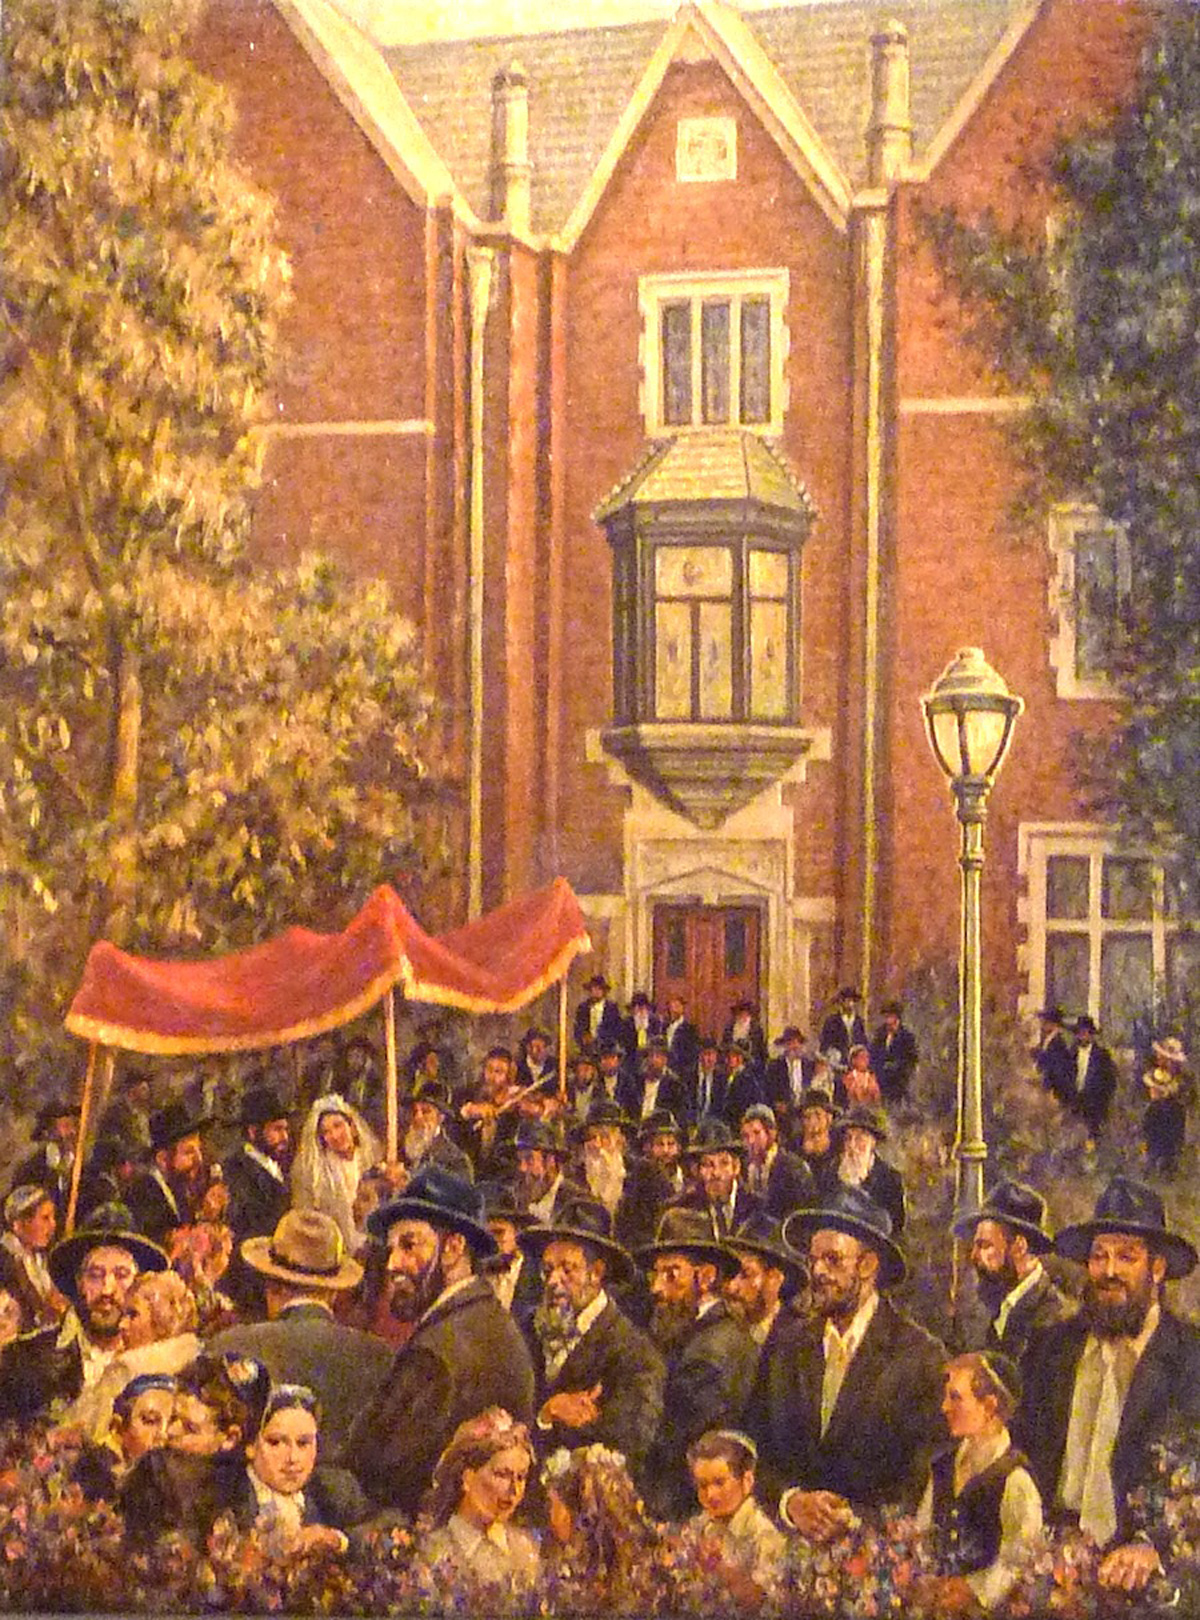 770 Wedding, (40 x 30) oil on canvas by Venyamin Zaslavsky Courtesy Chassidic Art Institute